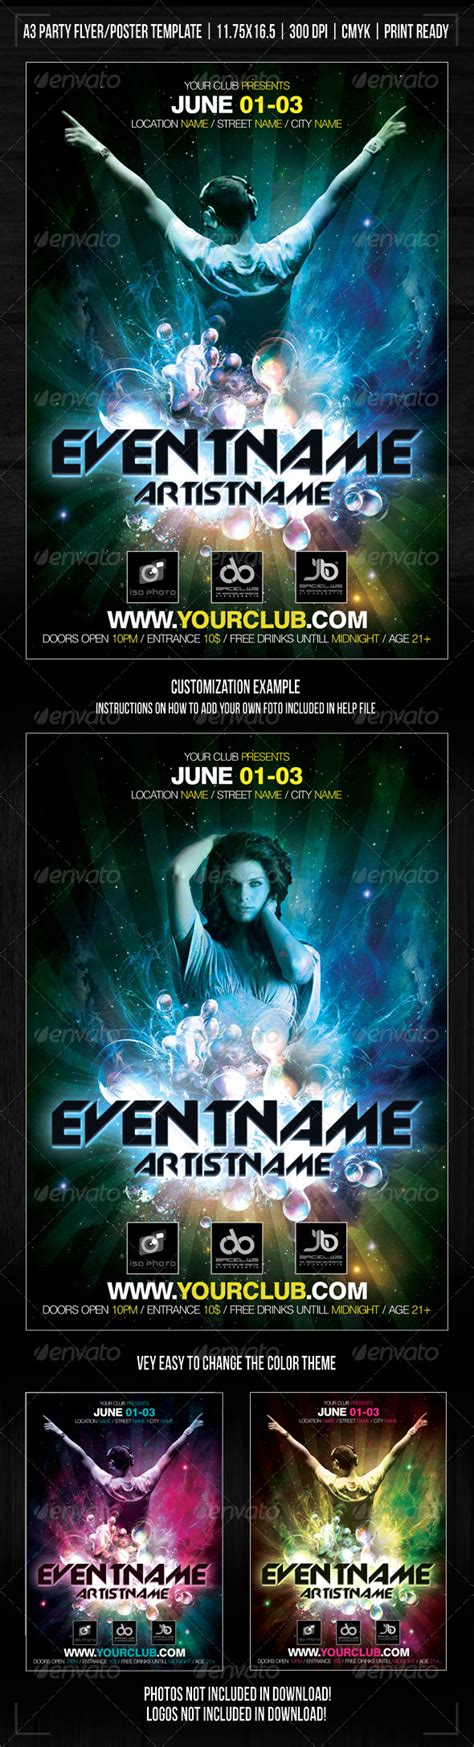 Nightclub Space Party Poster Flyer Template Print Templates Flyers Events Clubs Graphicriver Event Flyer Template